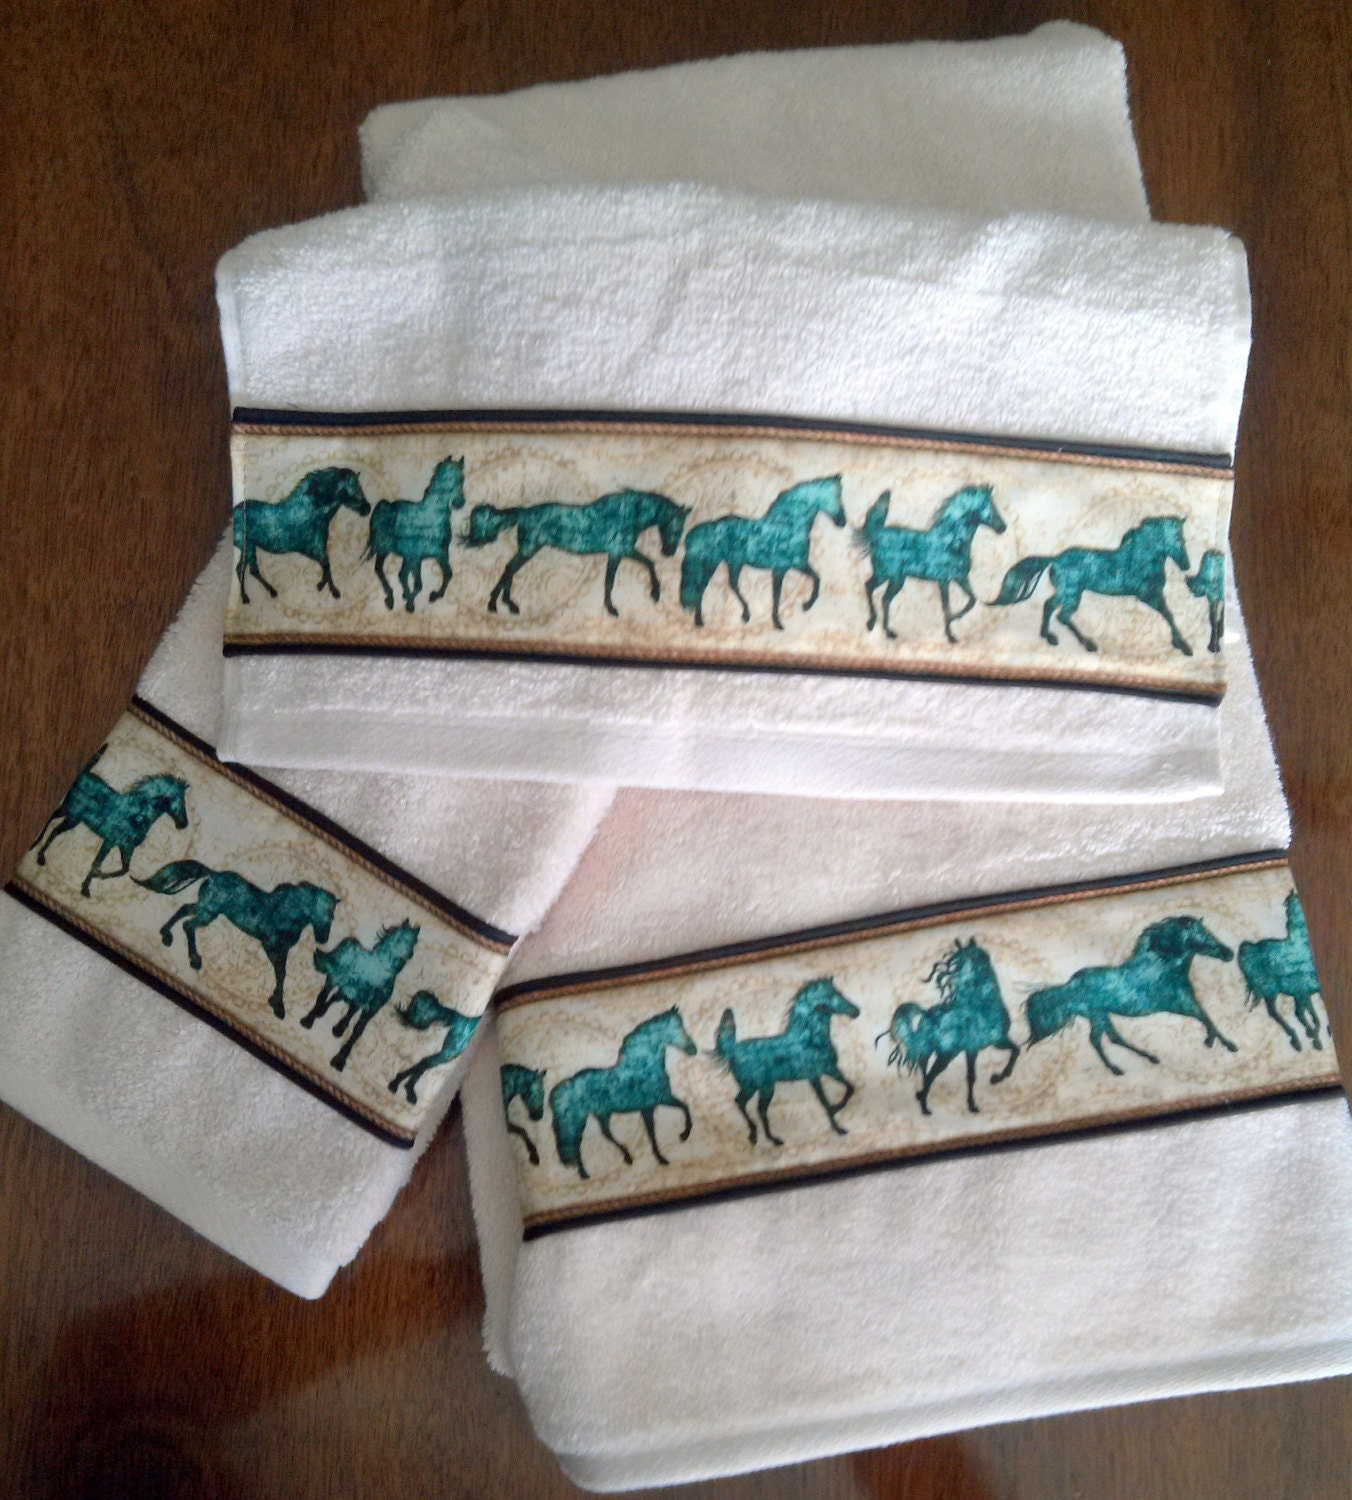 Bath Towel Sets Black And White: Horse Bath Towel Set Off White Towels With Teal Horses